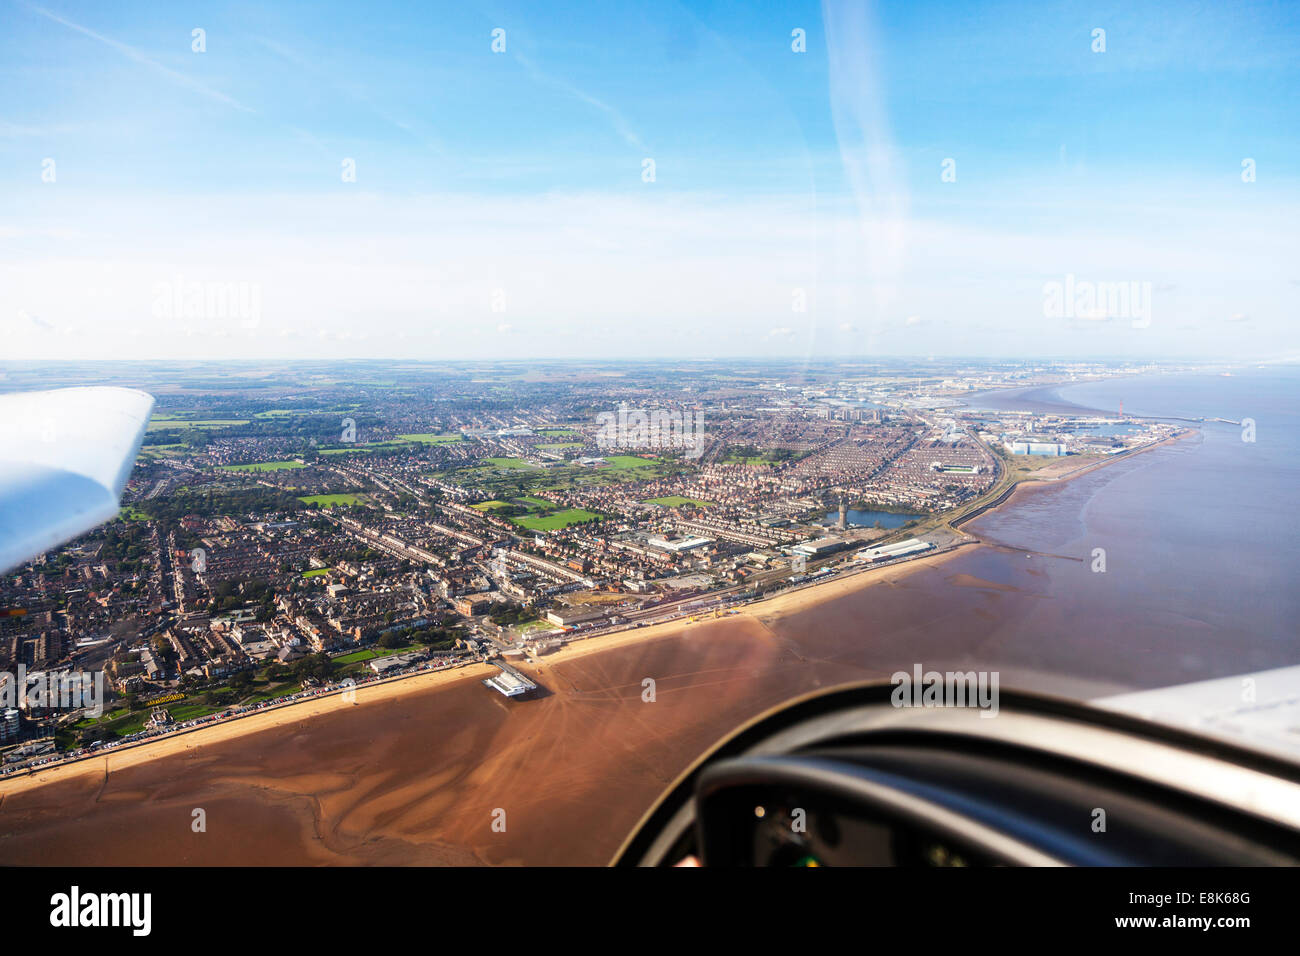 Cleethorpes pier & Grimsby aerial view town houses homes coast coastal coastline Humber estuary river from above - Stock Image